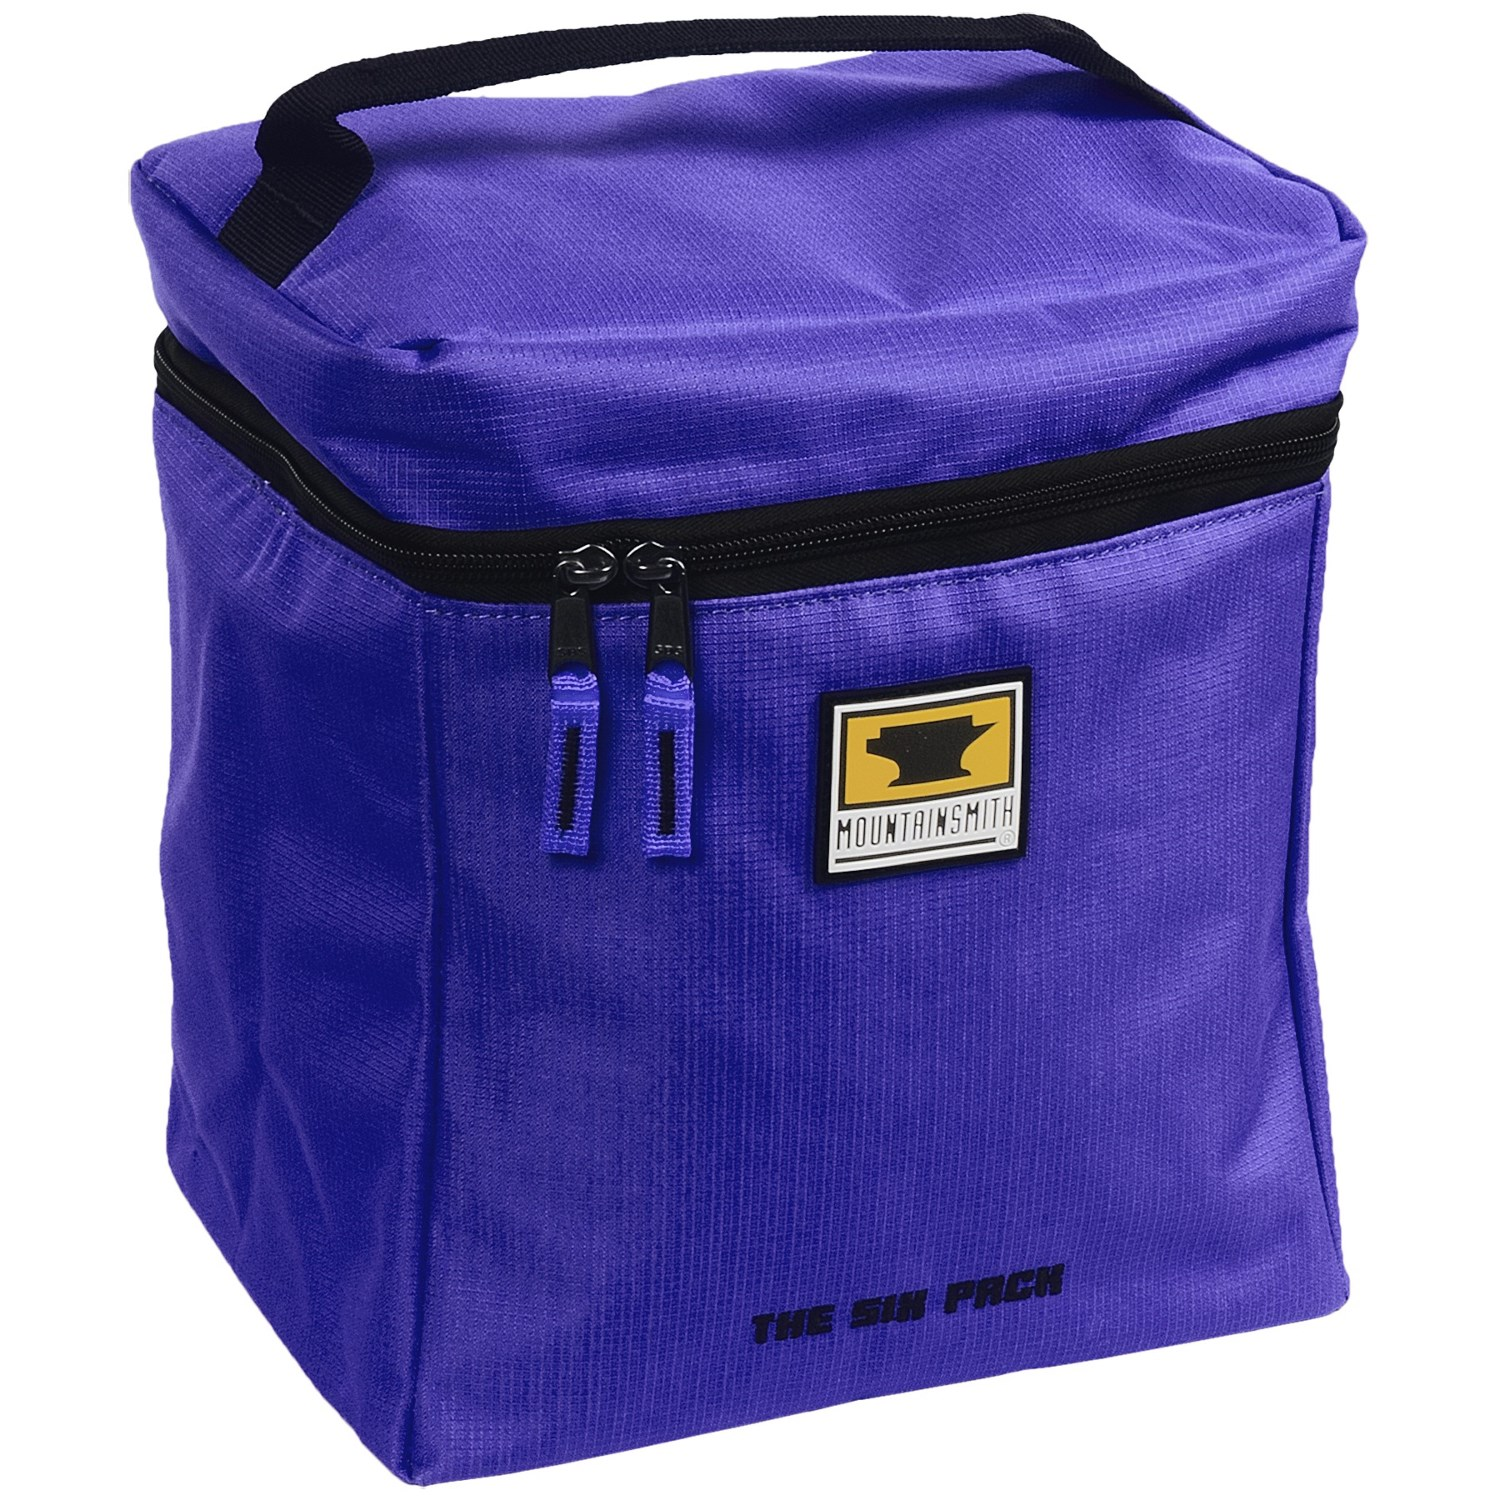 6 Pack Cooler ~ Mountainsmith six pack cooler in cobalt